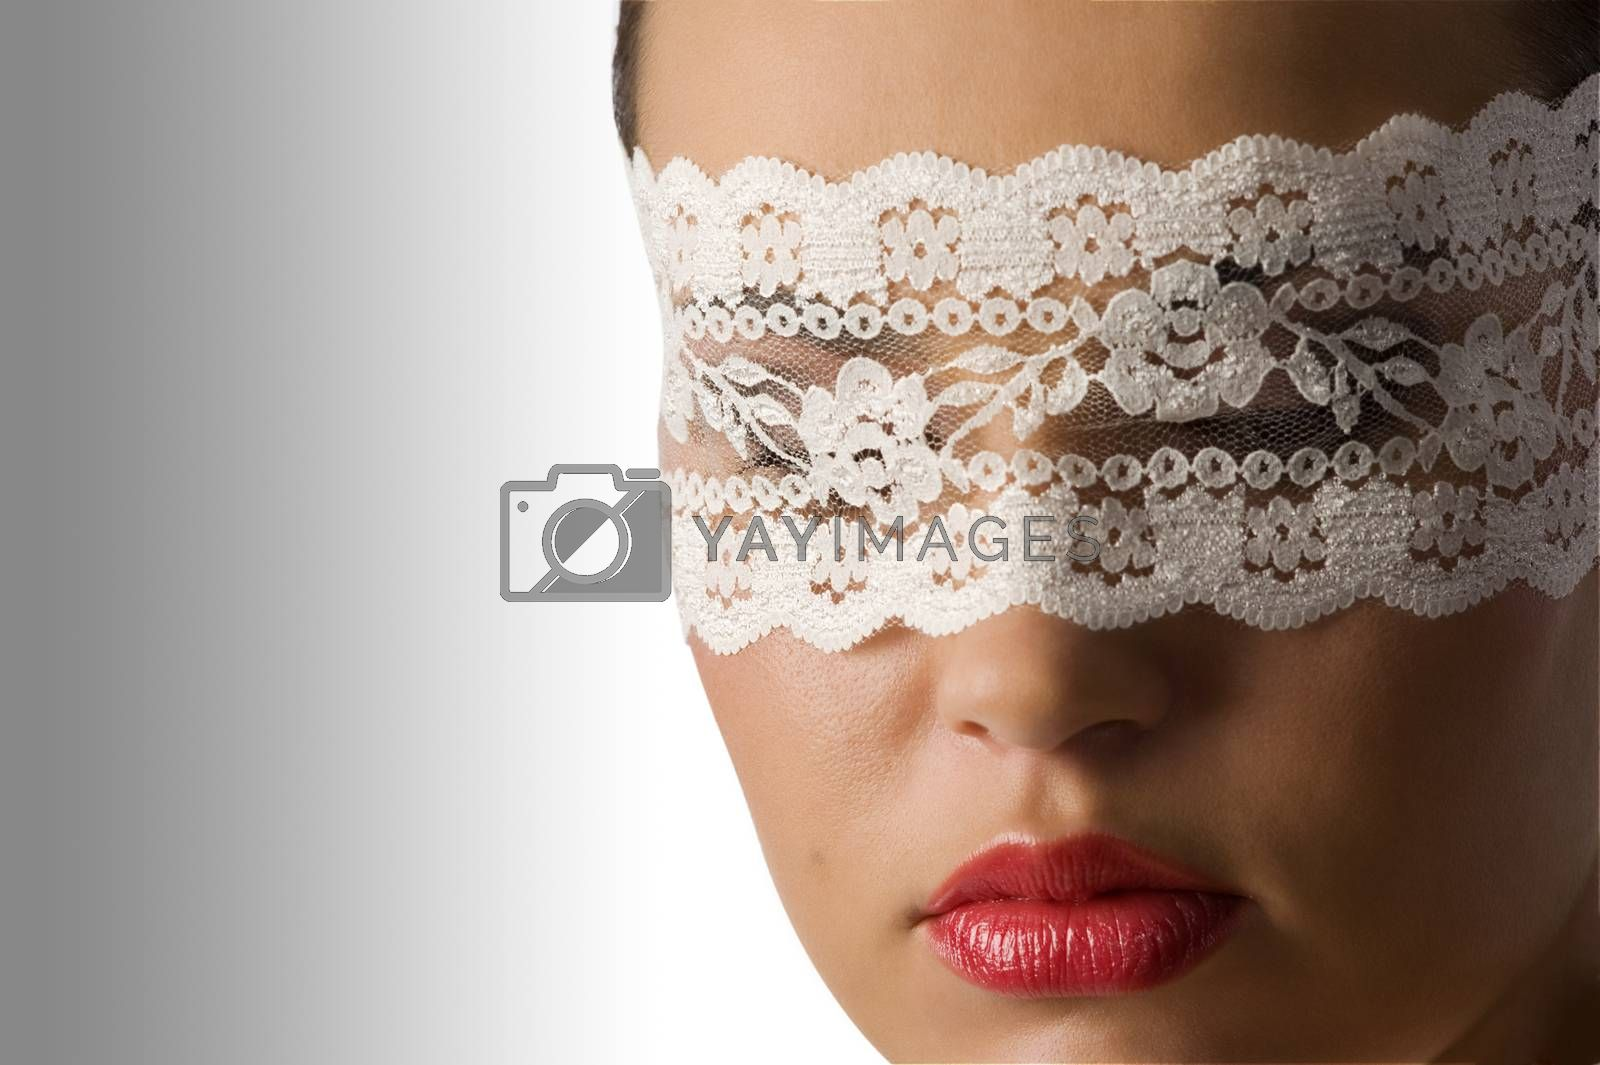 Royalty free image of close up with mask by fotoCD